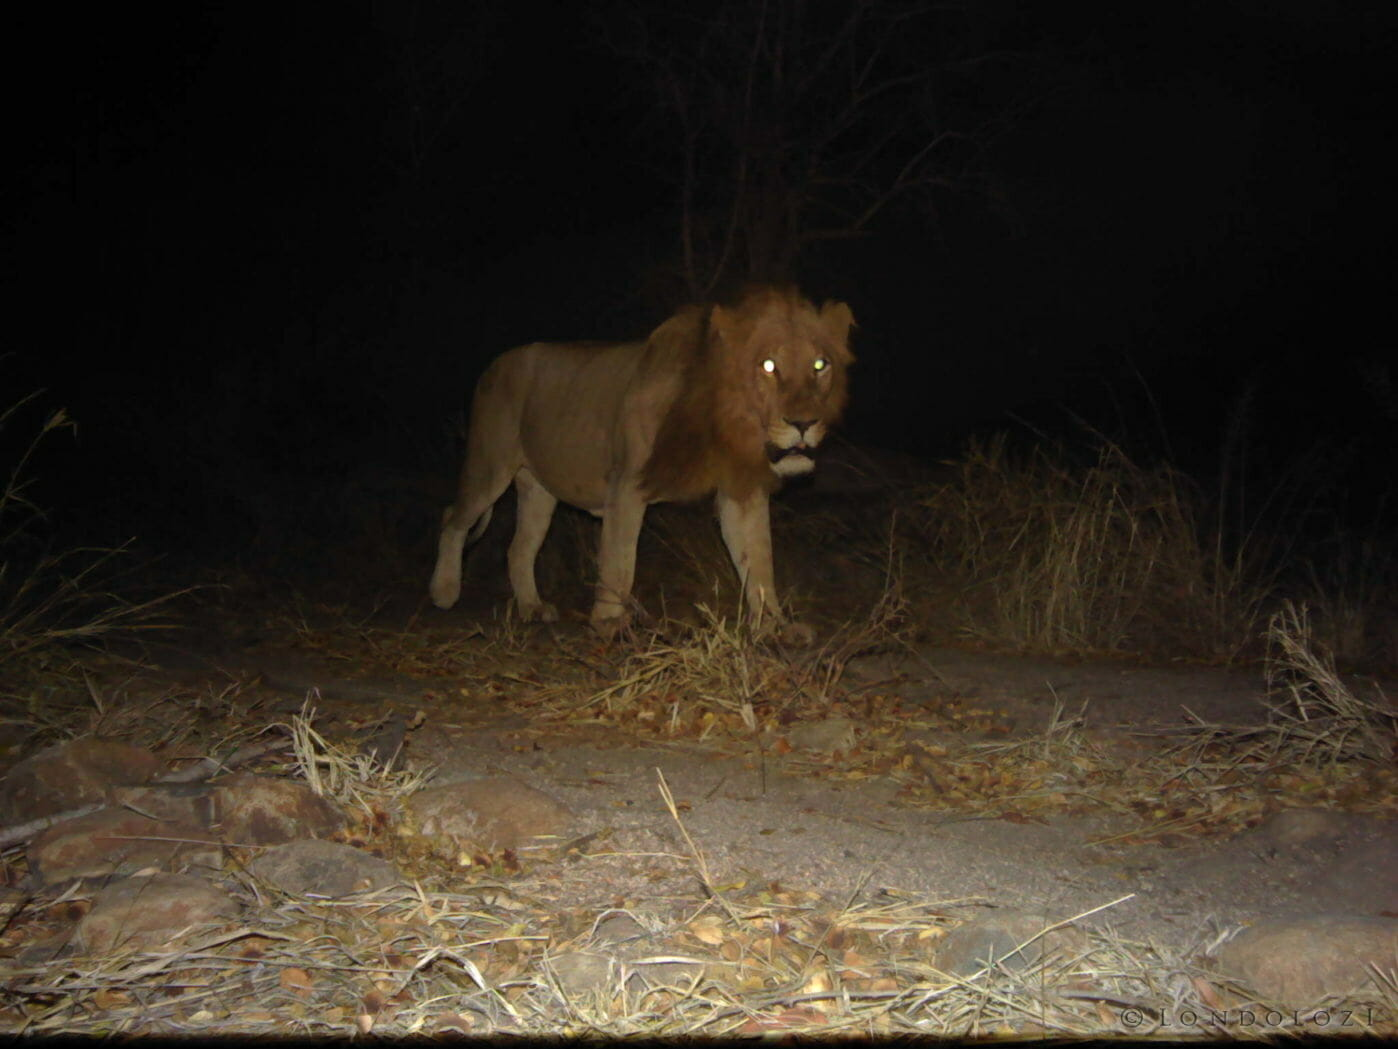 Male lion caught on a camera trap at night at Londolozi.